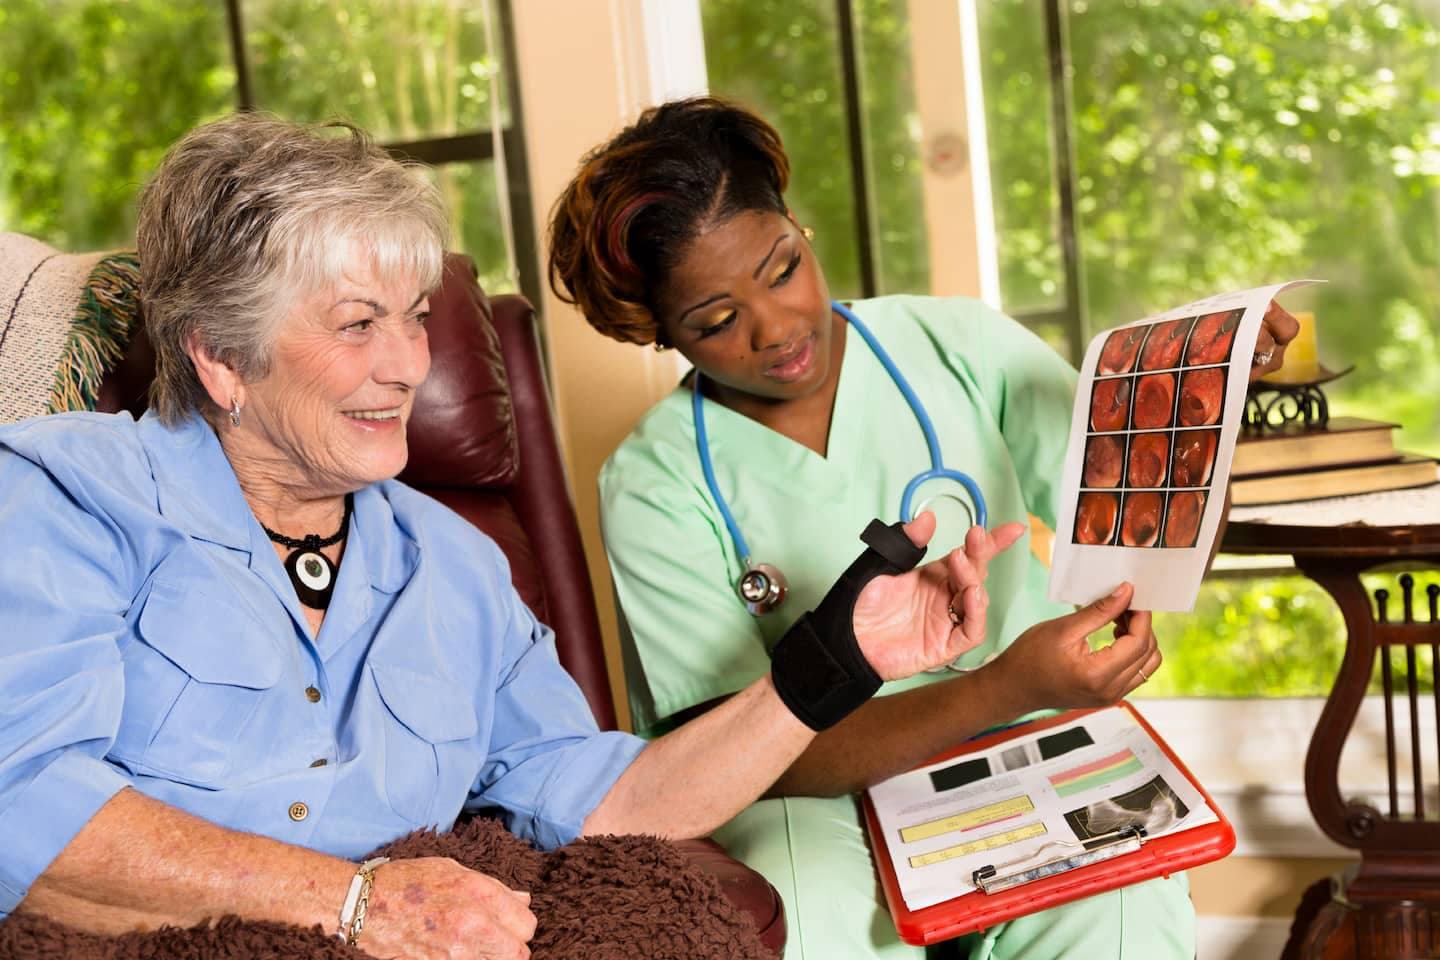 7 Questions to Ask a Home Care Agency | Angie's List